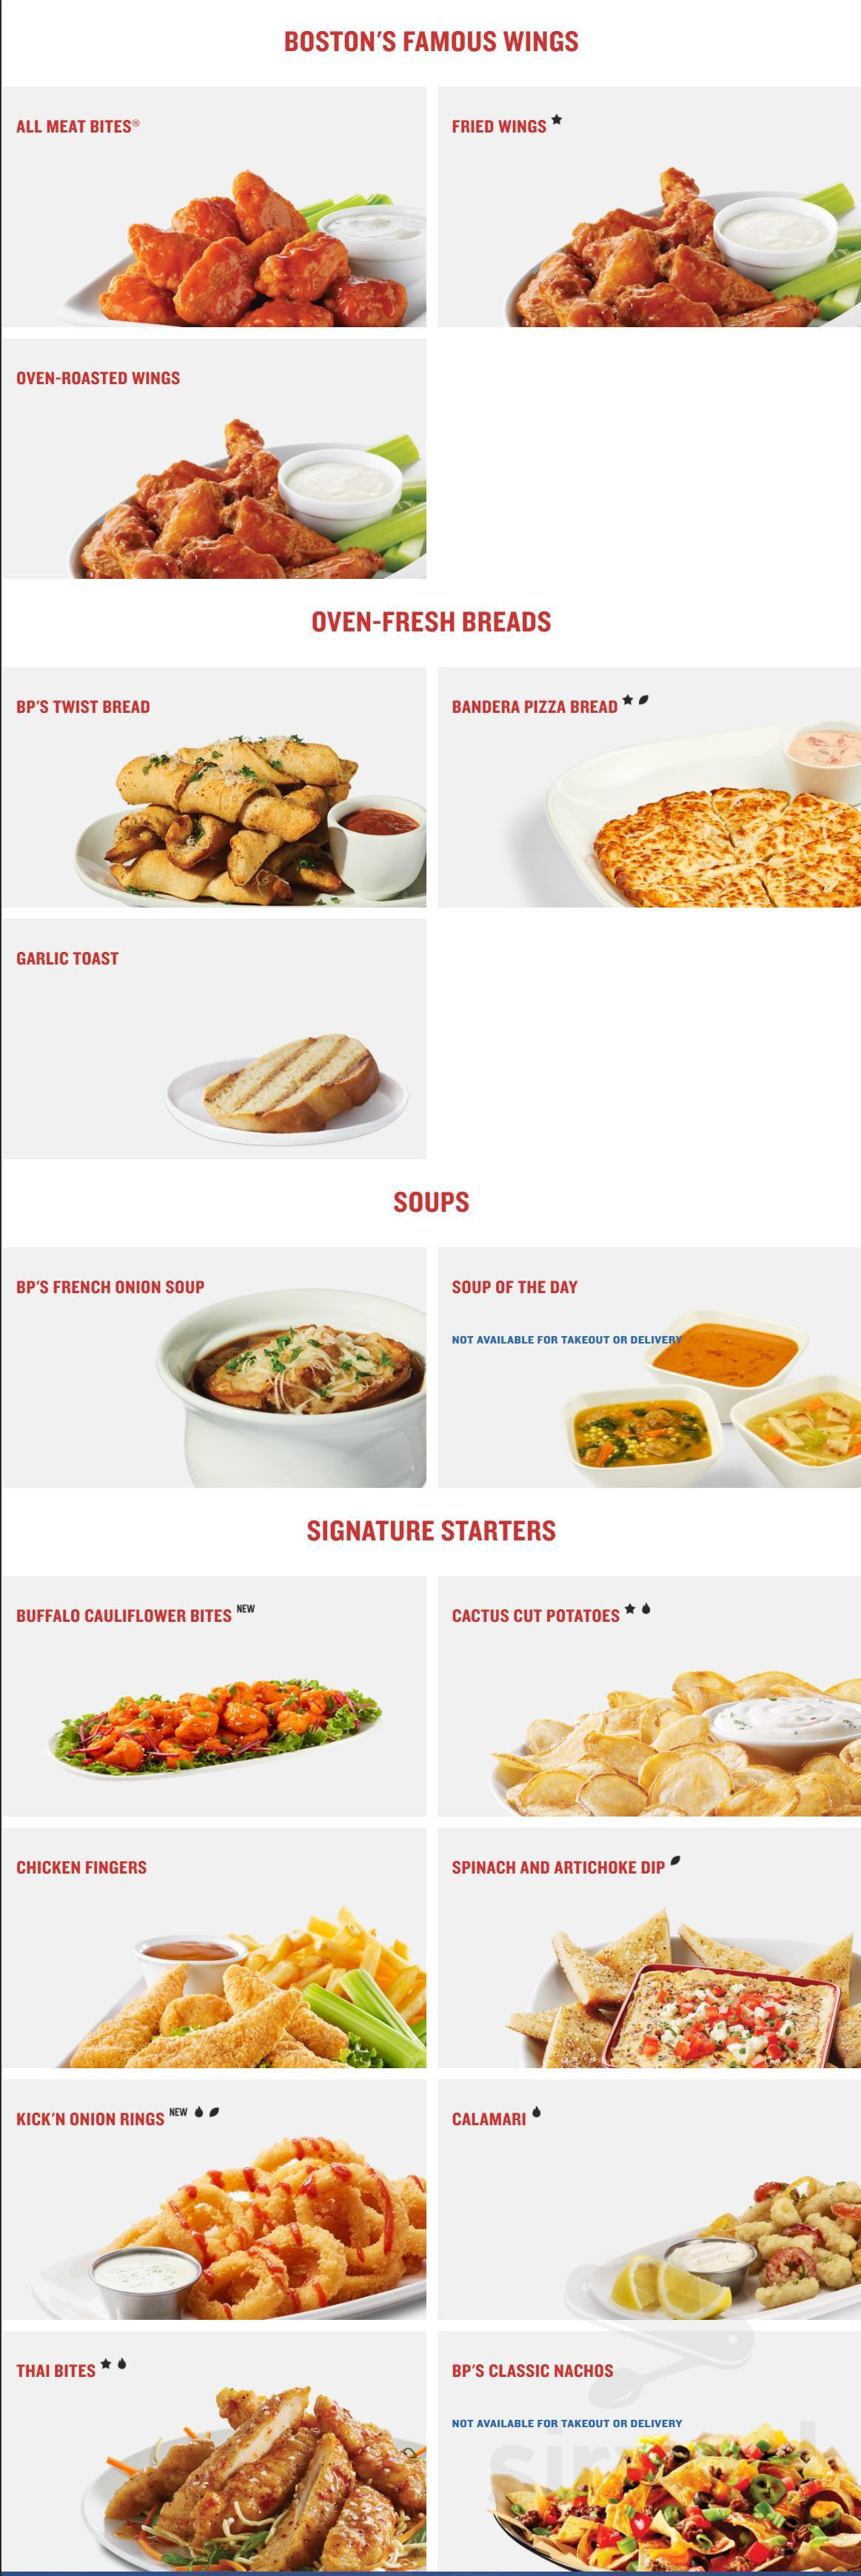 Boston Pizza Menu In Thunder Bay Ontario Canada One order comes with eight pieces. boston pizza menu in thunder bay